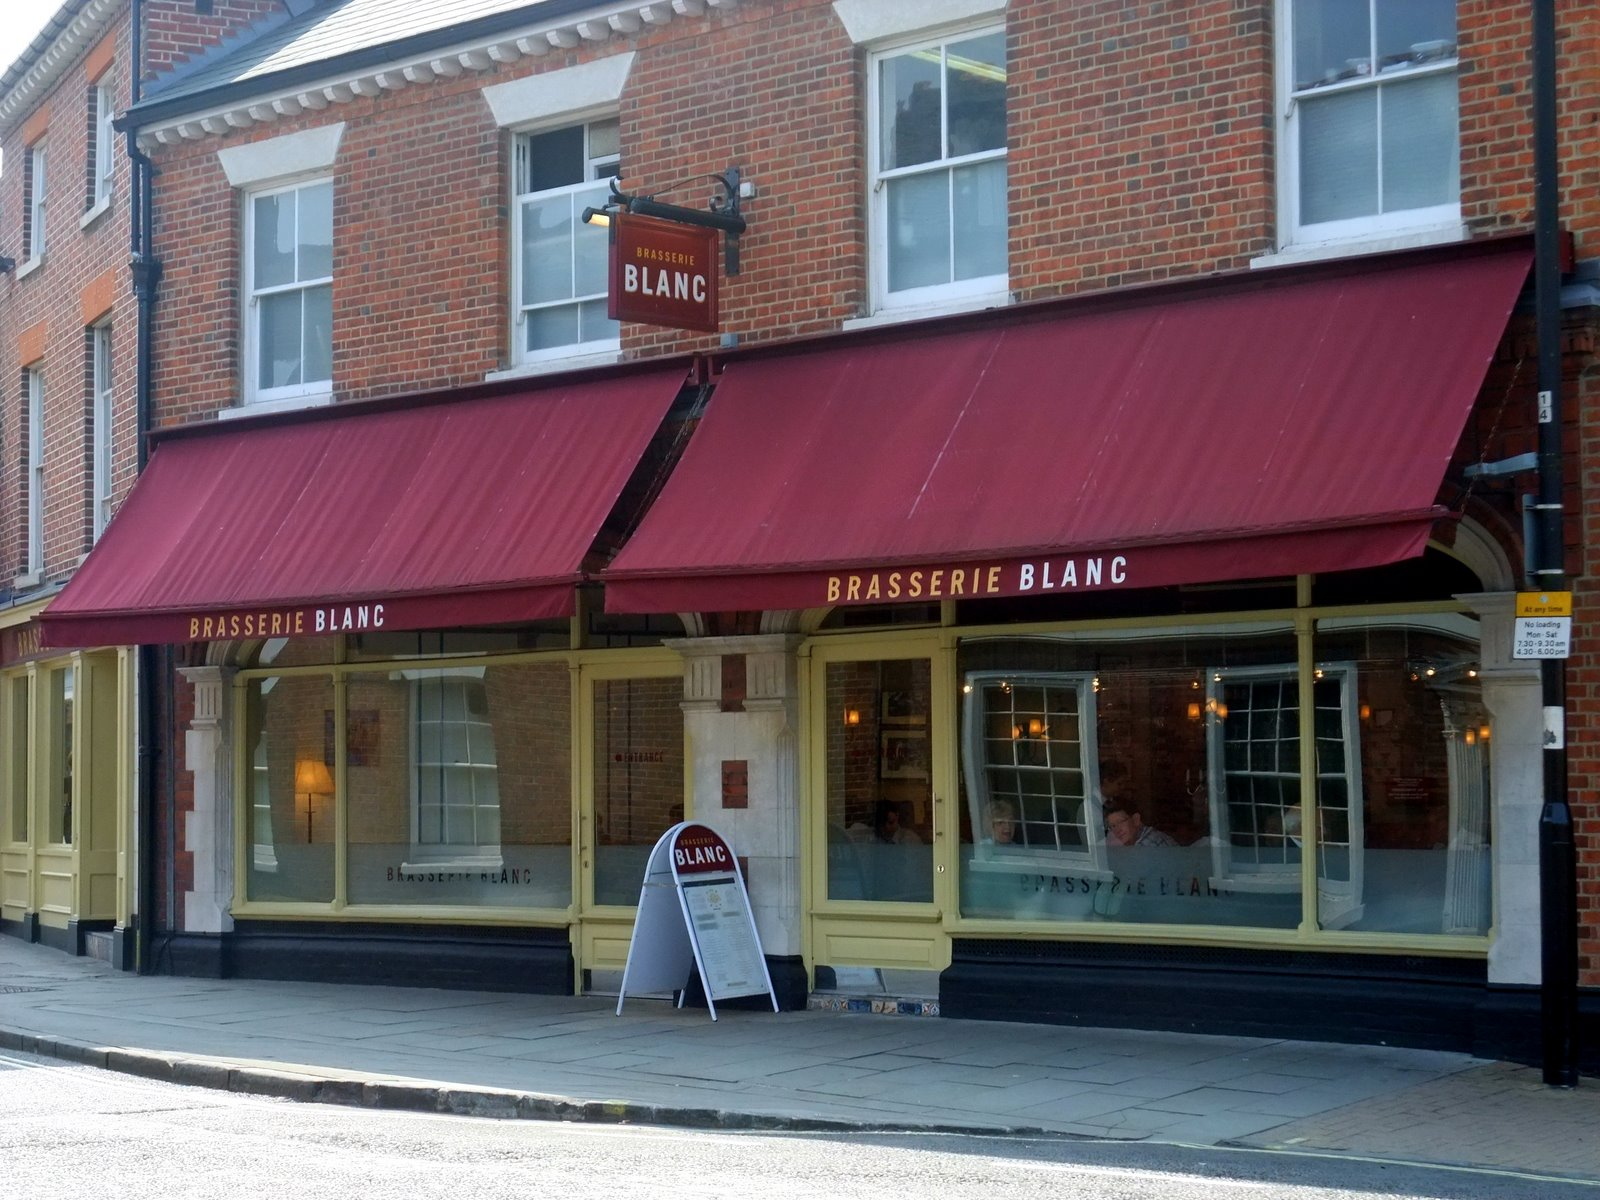 This Is One Of My Favourite Restaurants In Winchester And Always Seems To Be Por Particularly At Lunchtimes The Blanc Refers Celebrity Chef